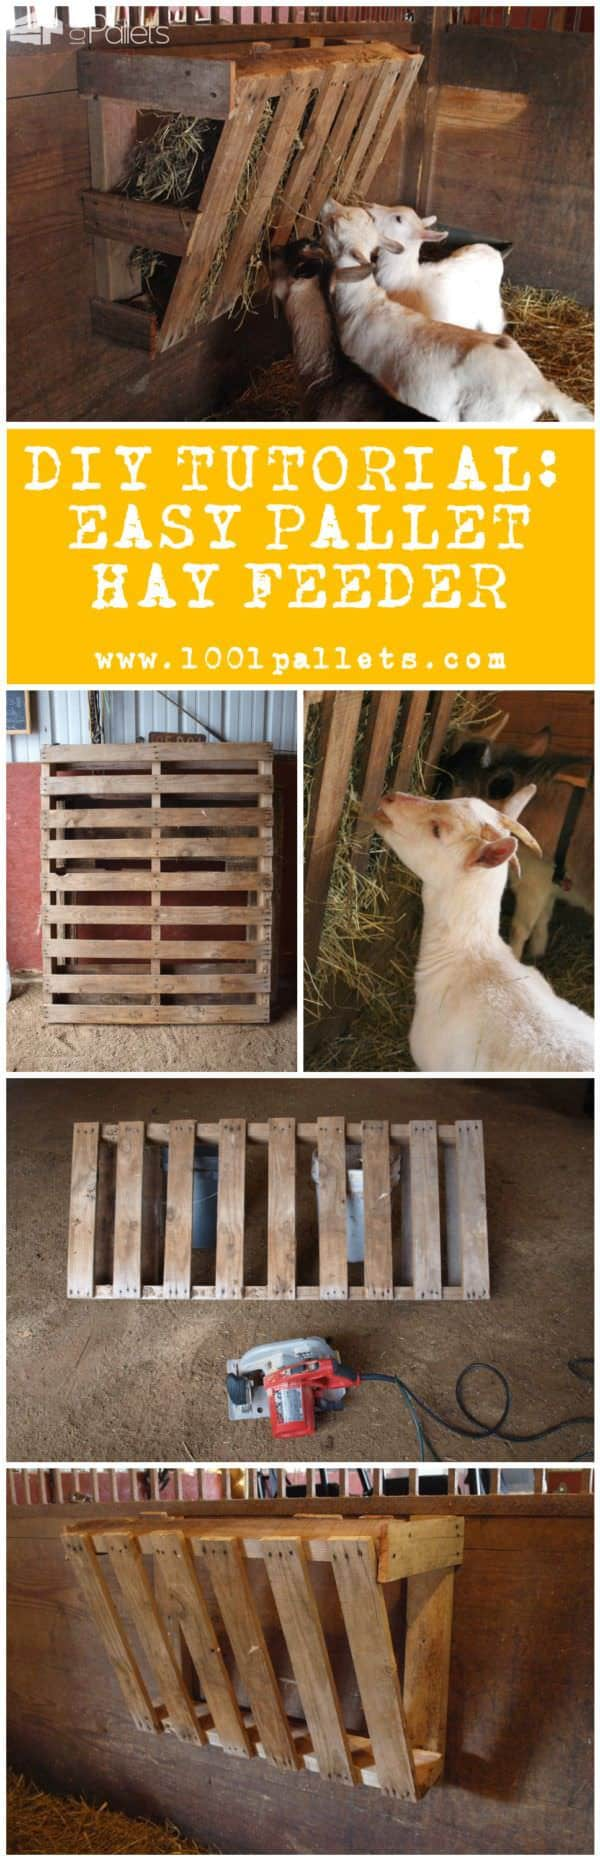 Diy Tutorial: Easy Pallet Hay Feeder Animal Pallet Houses & Pallet Supplies Step-by-step Printable Pallet PDF Tutorials